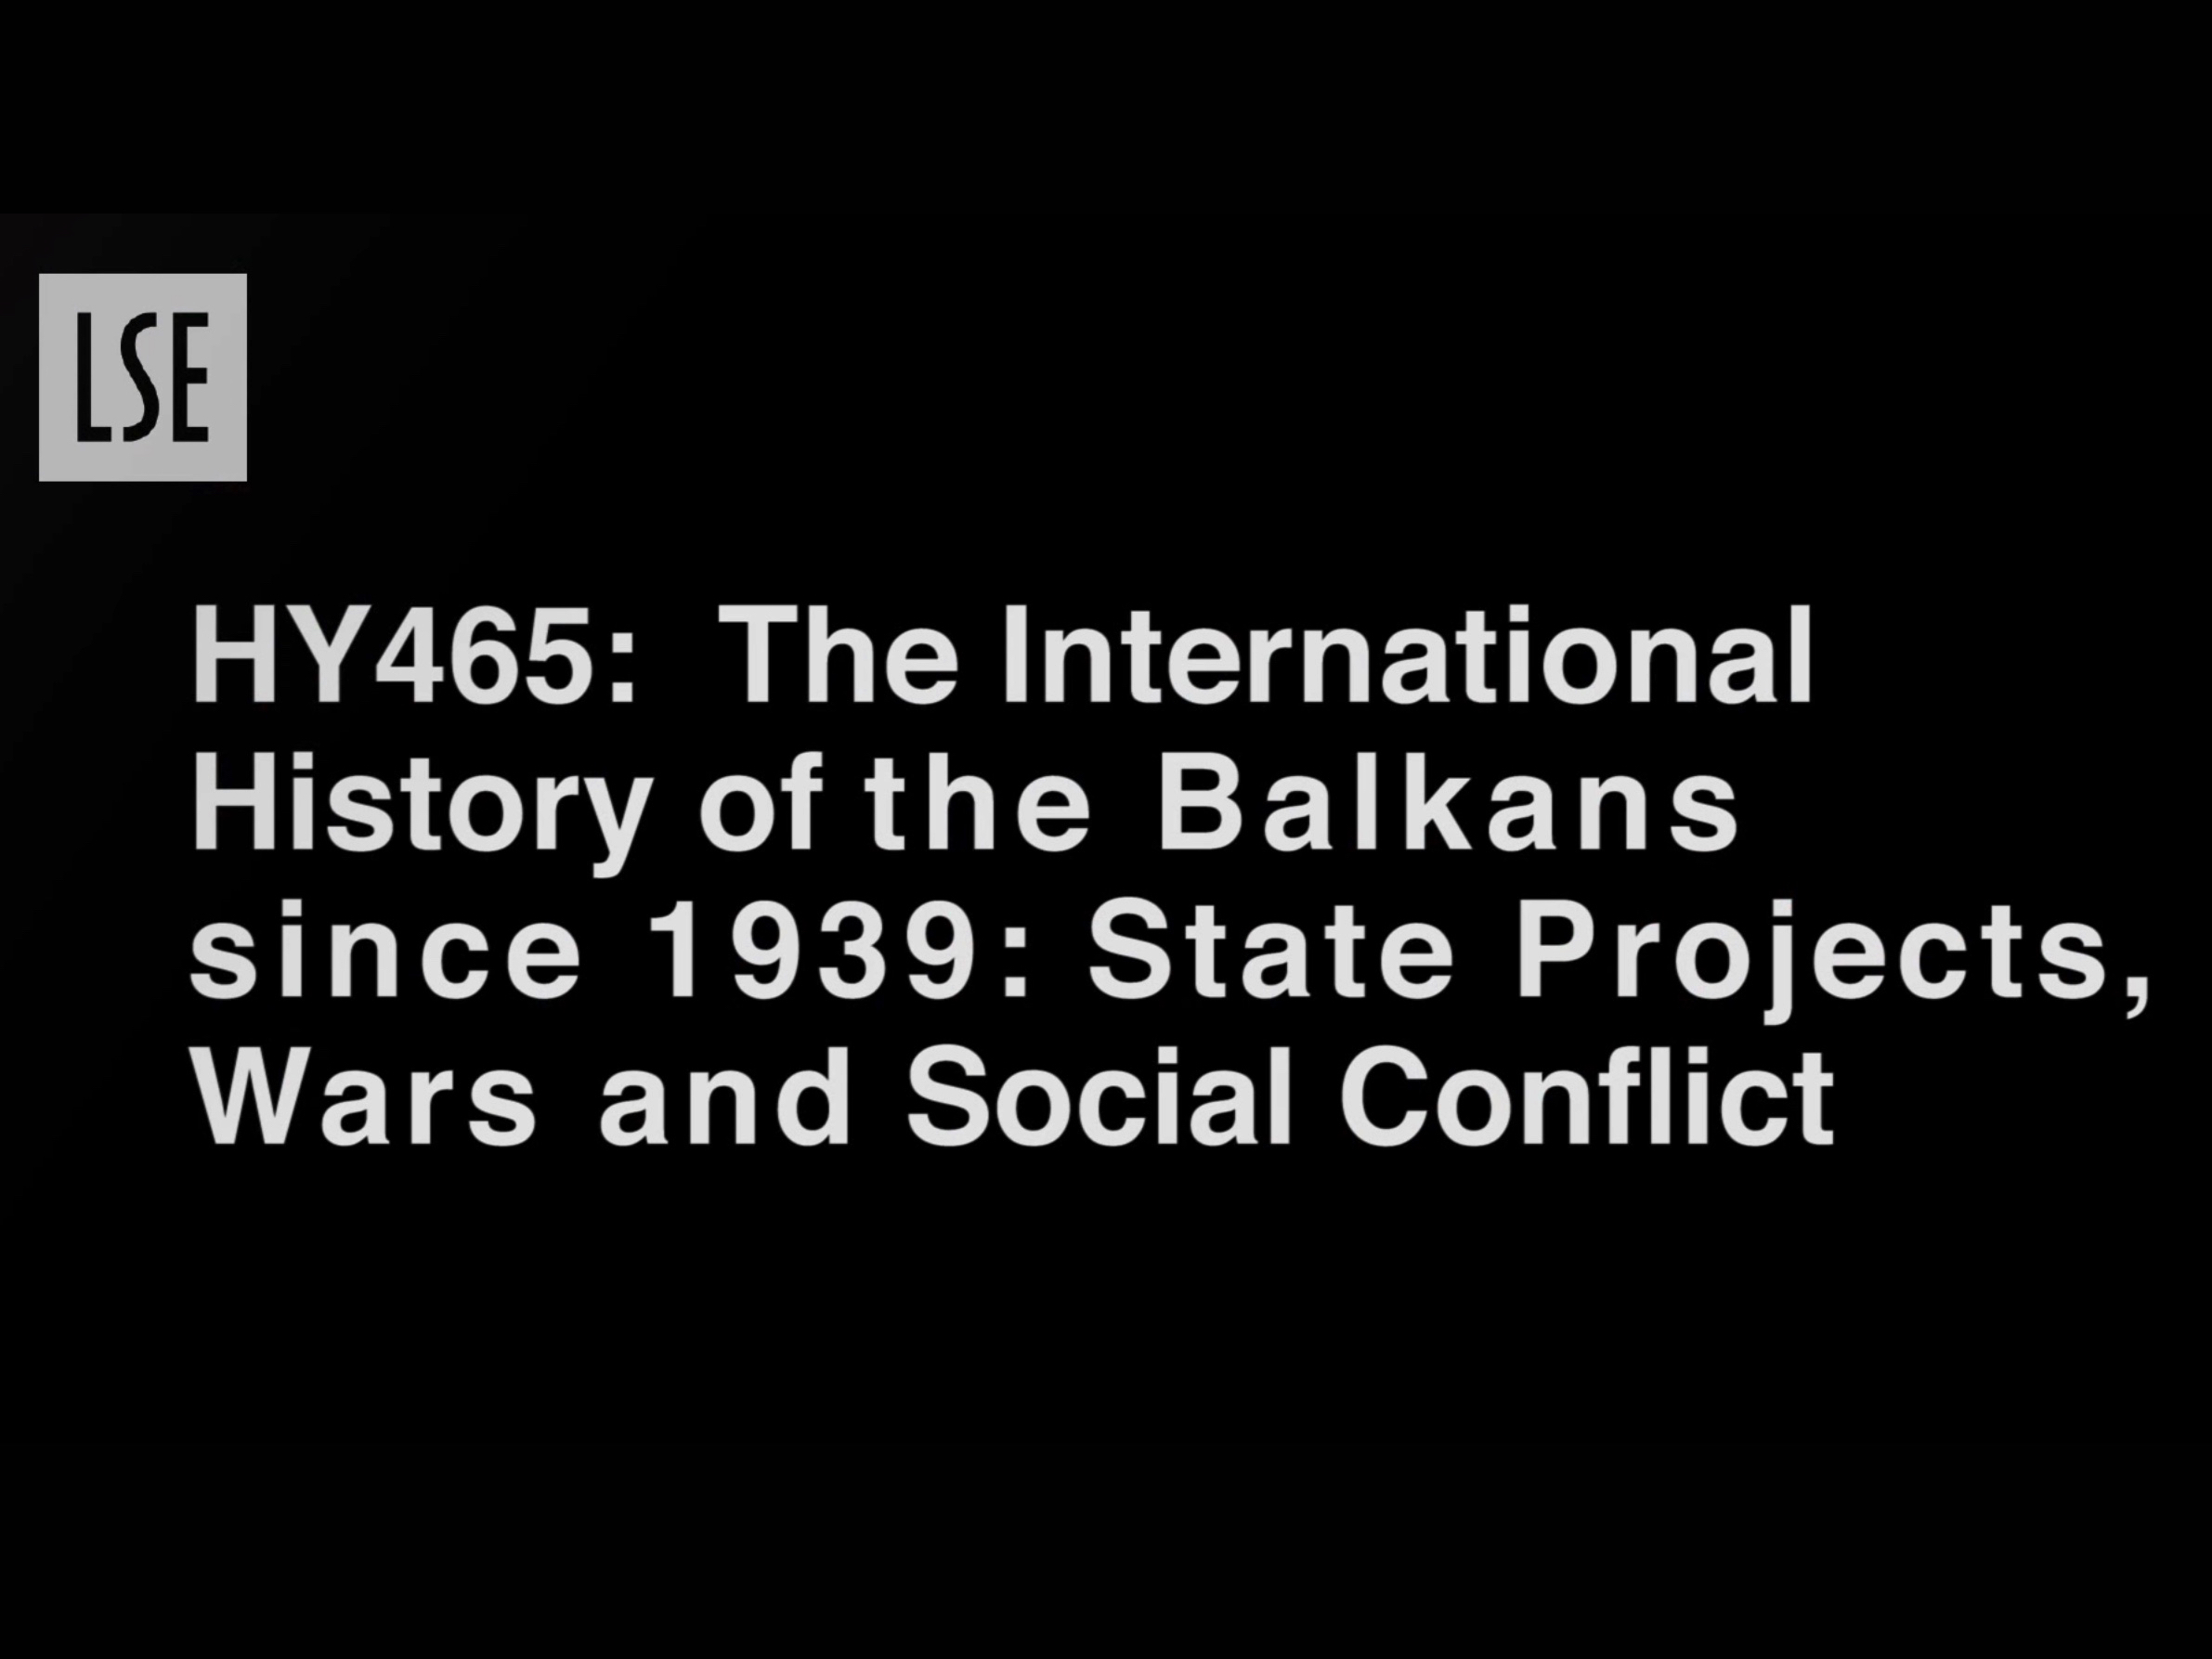 HY465: The International History of the Balkans since 1939: State Projects, Wars, and Social Conflict